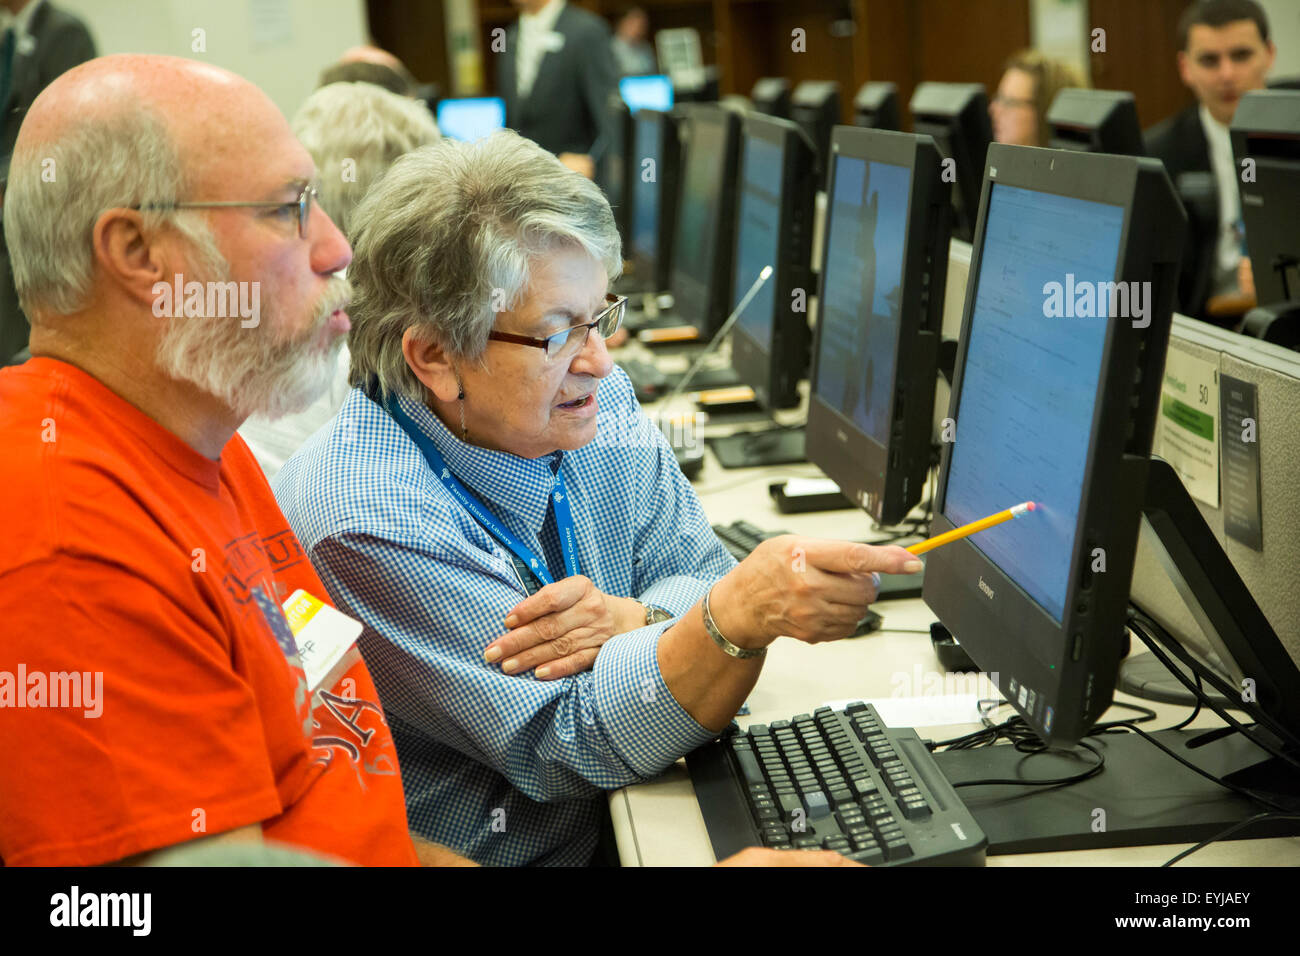 Salt Lake City, Utah - Genealogical research at the Mormon church's Family History Library. - Stock Image